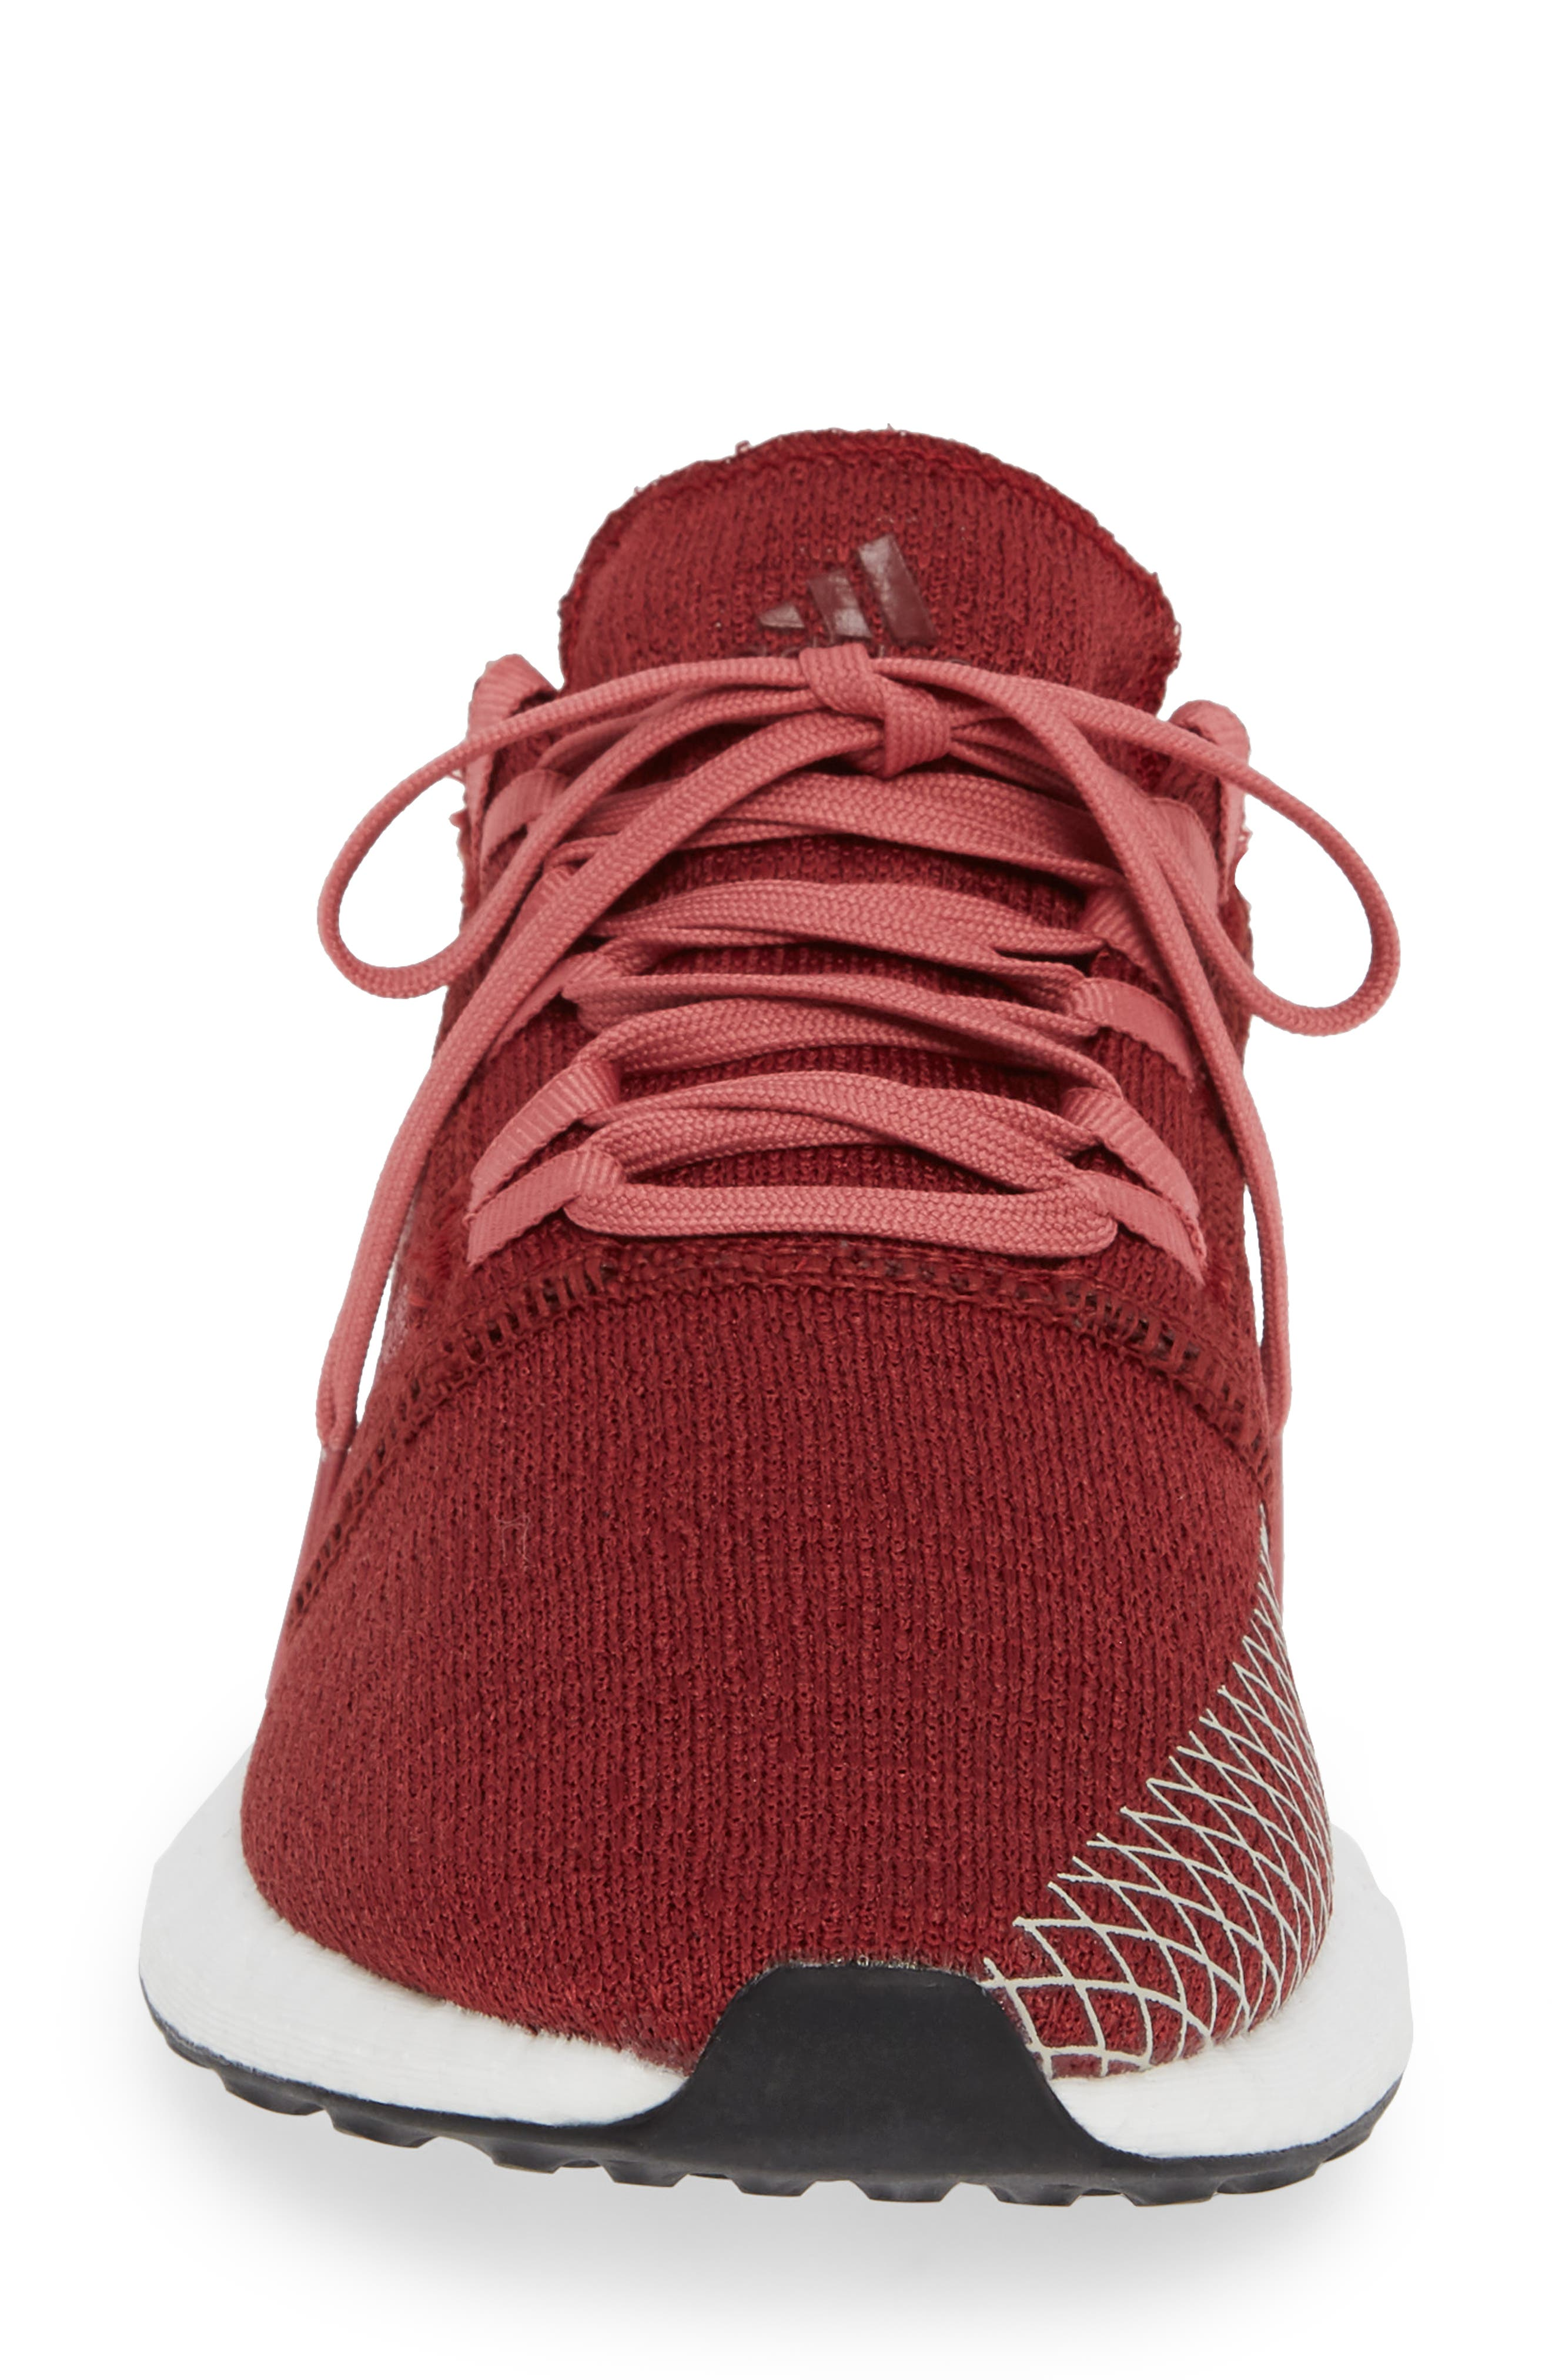 PureBoost X Element Knit Running Shoe,                             Alternate thumbnail 4, color,                             NOBLE MAROON/ MAROON/ BROWN